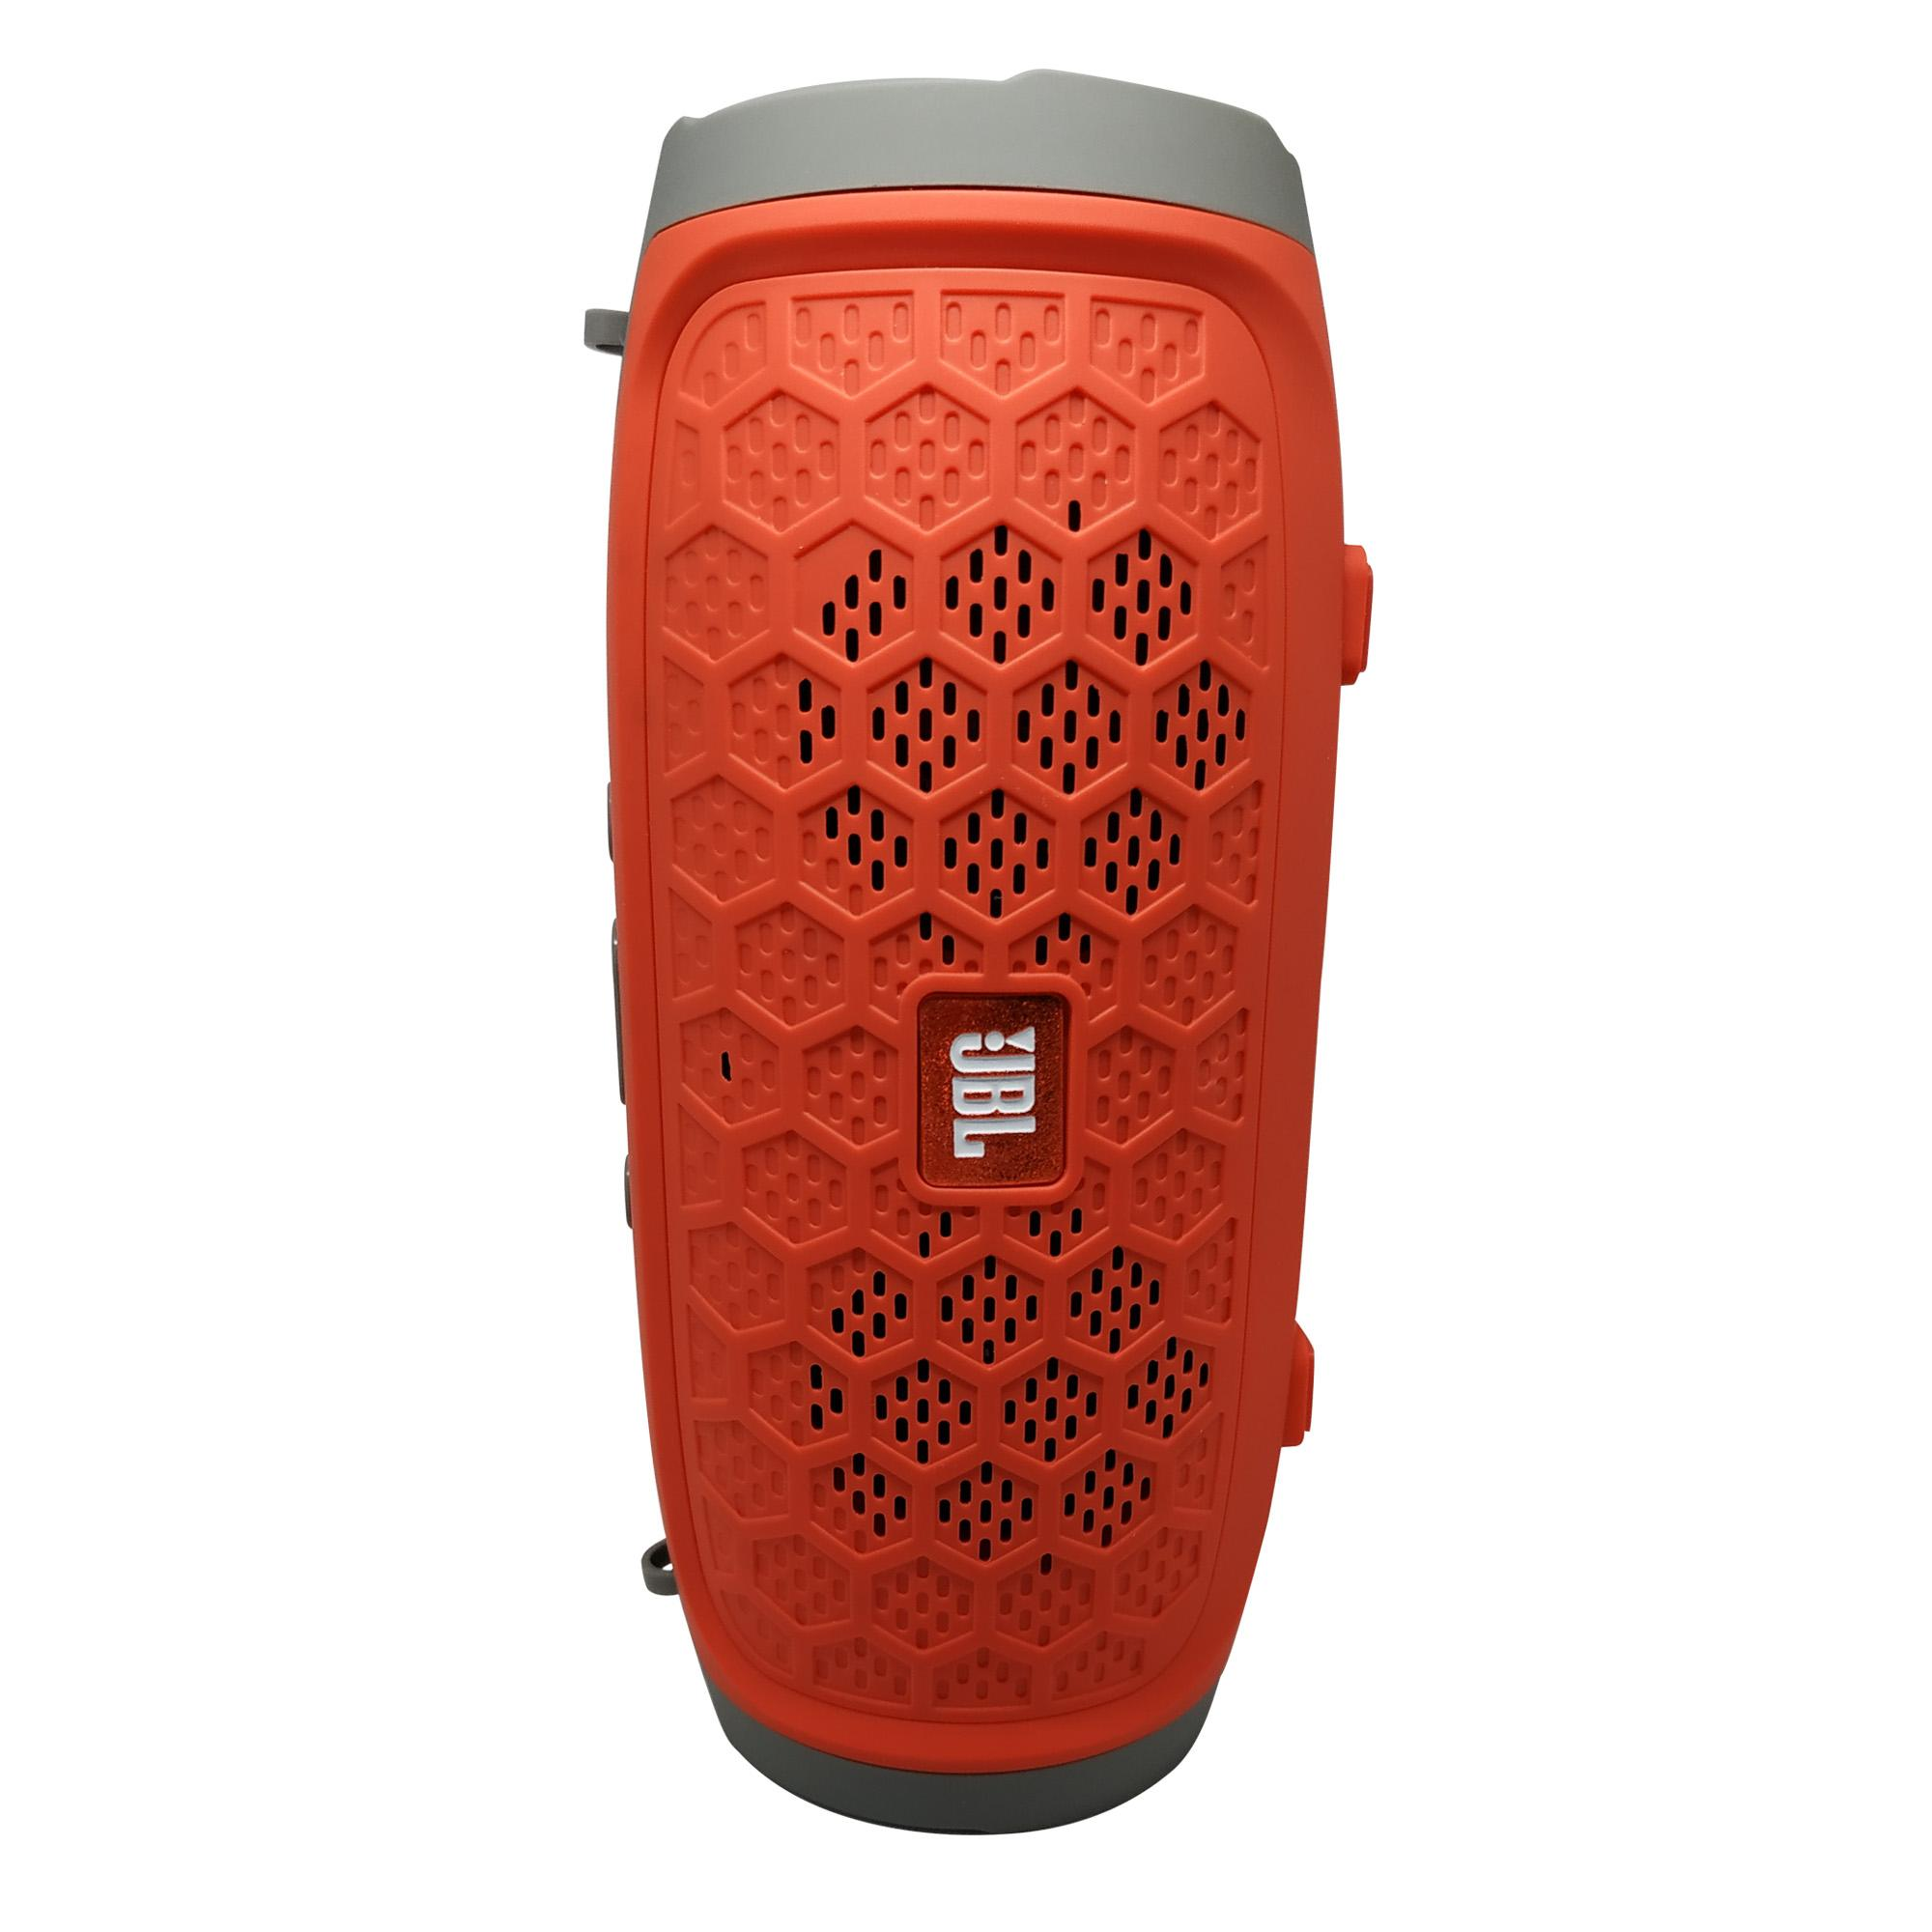 Features Speaker Jbl Extrere Oem Extreme Bluetooth Wireless Real Box Musik Eom Kw Picture 3